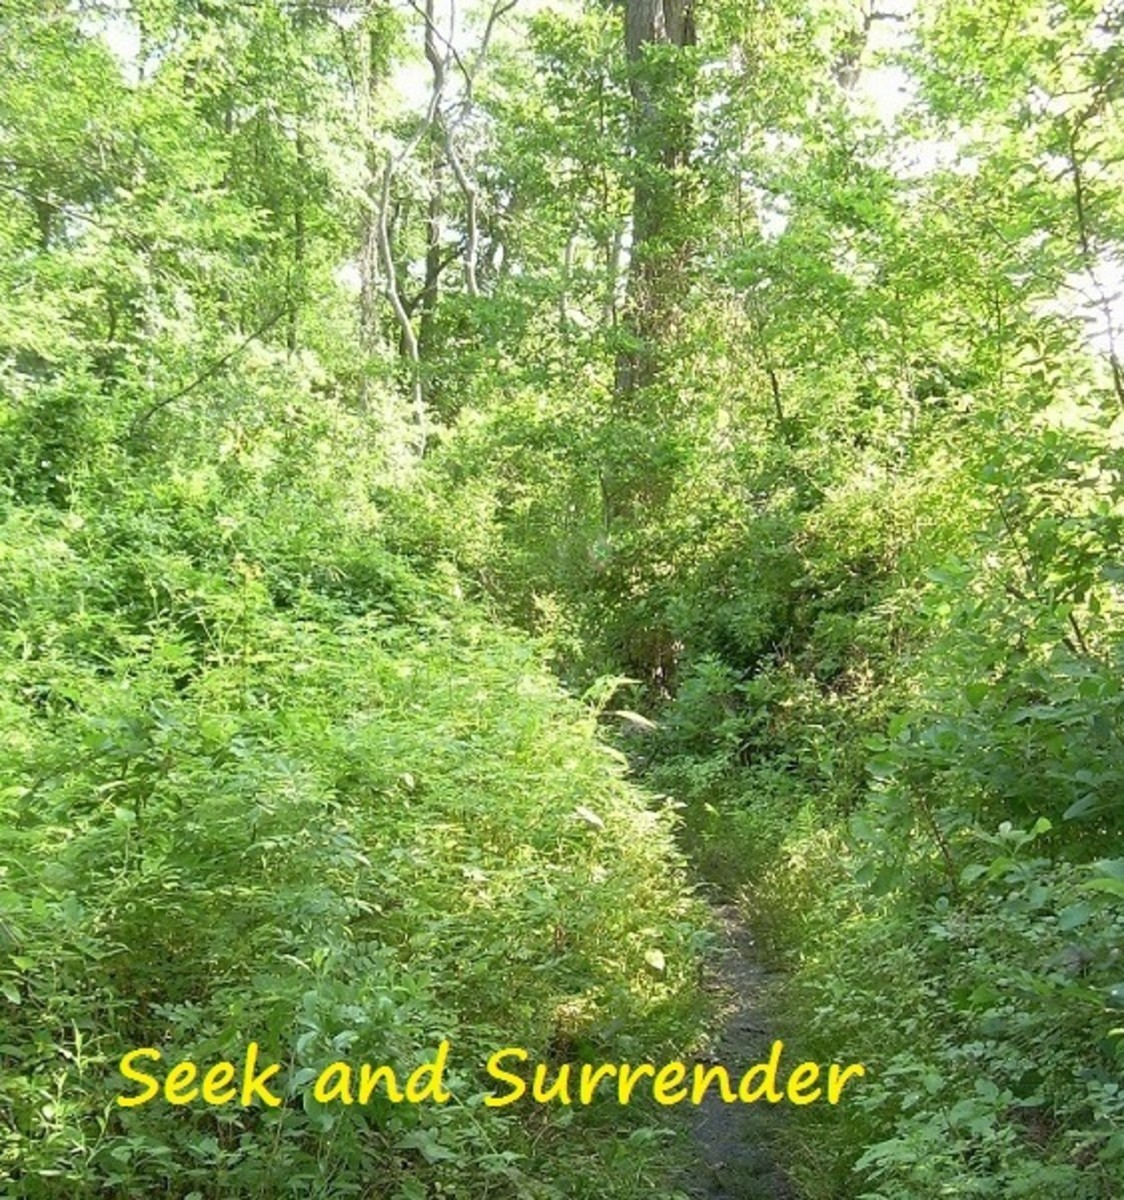 Seek and Surrender